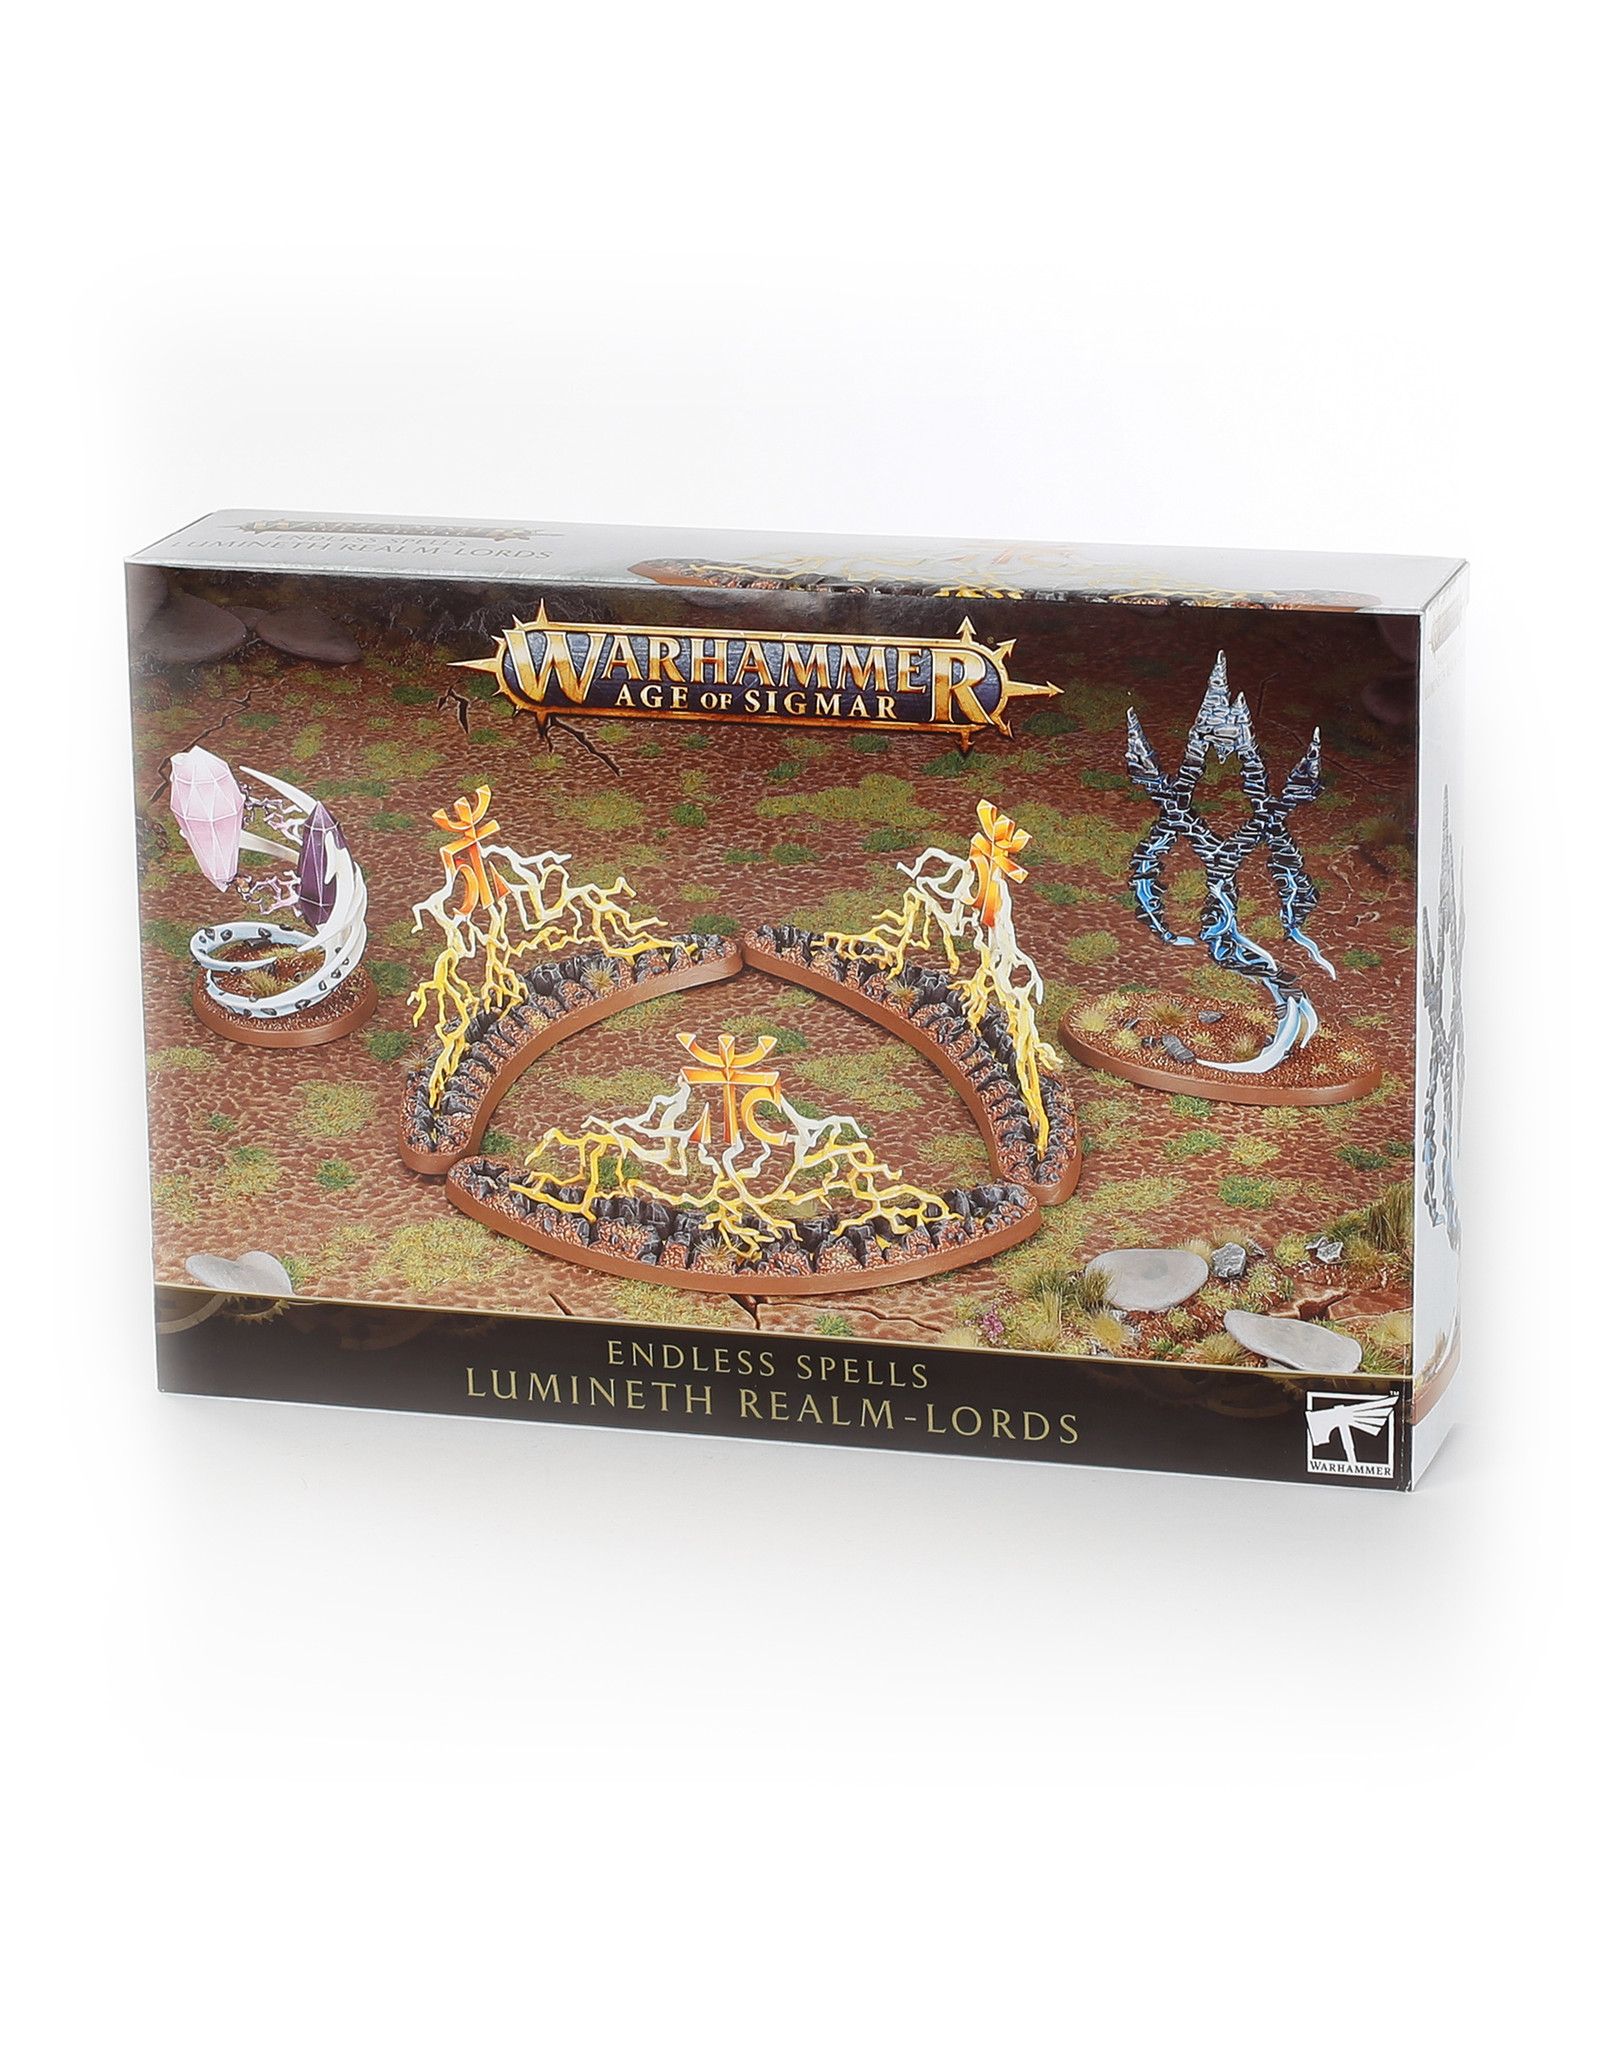 Age of Sigmar Lumineth Realm-Lords: Endless Spells